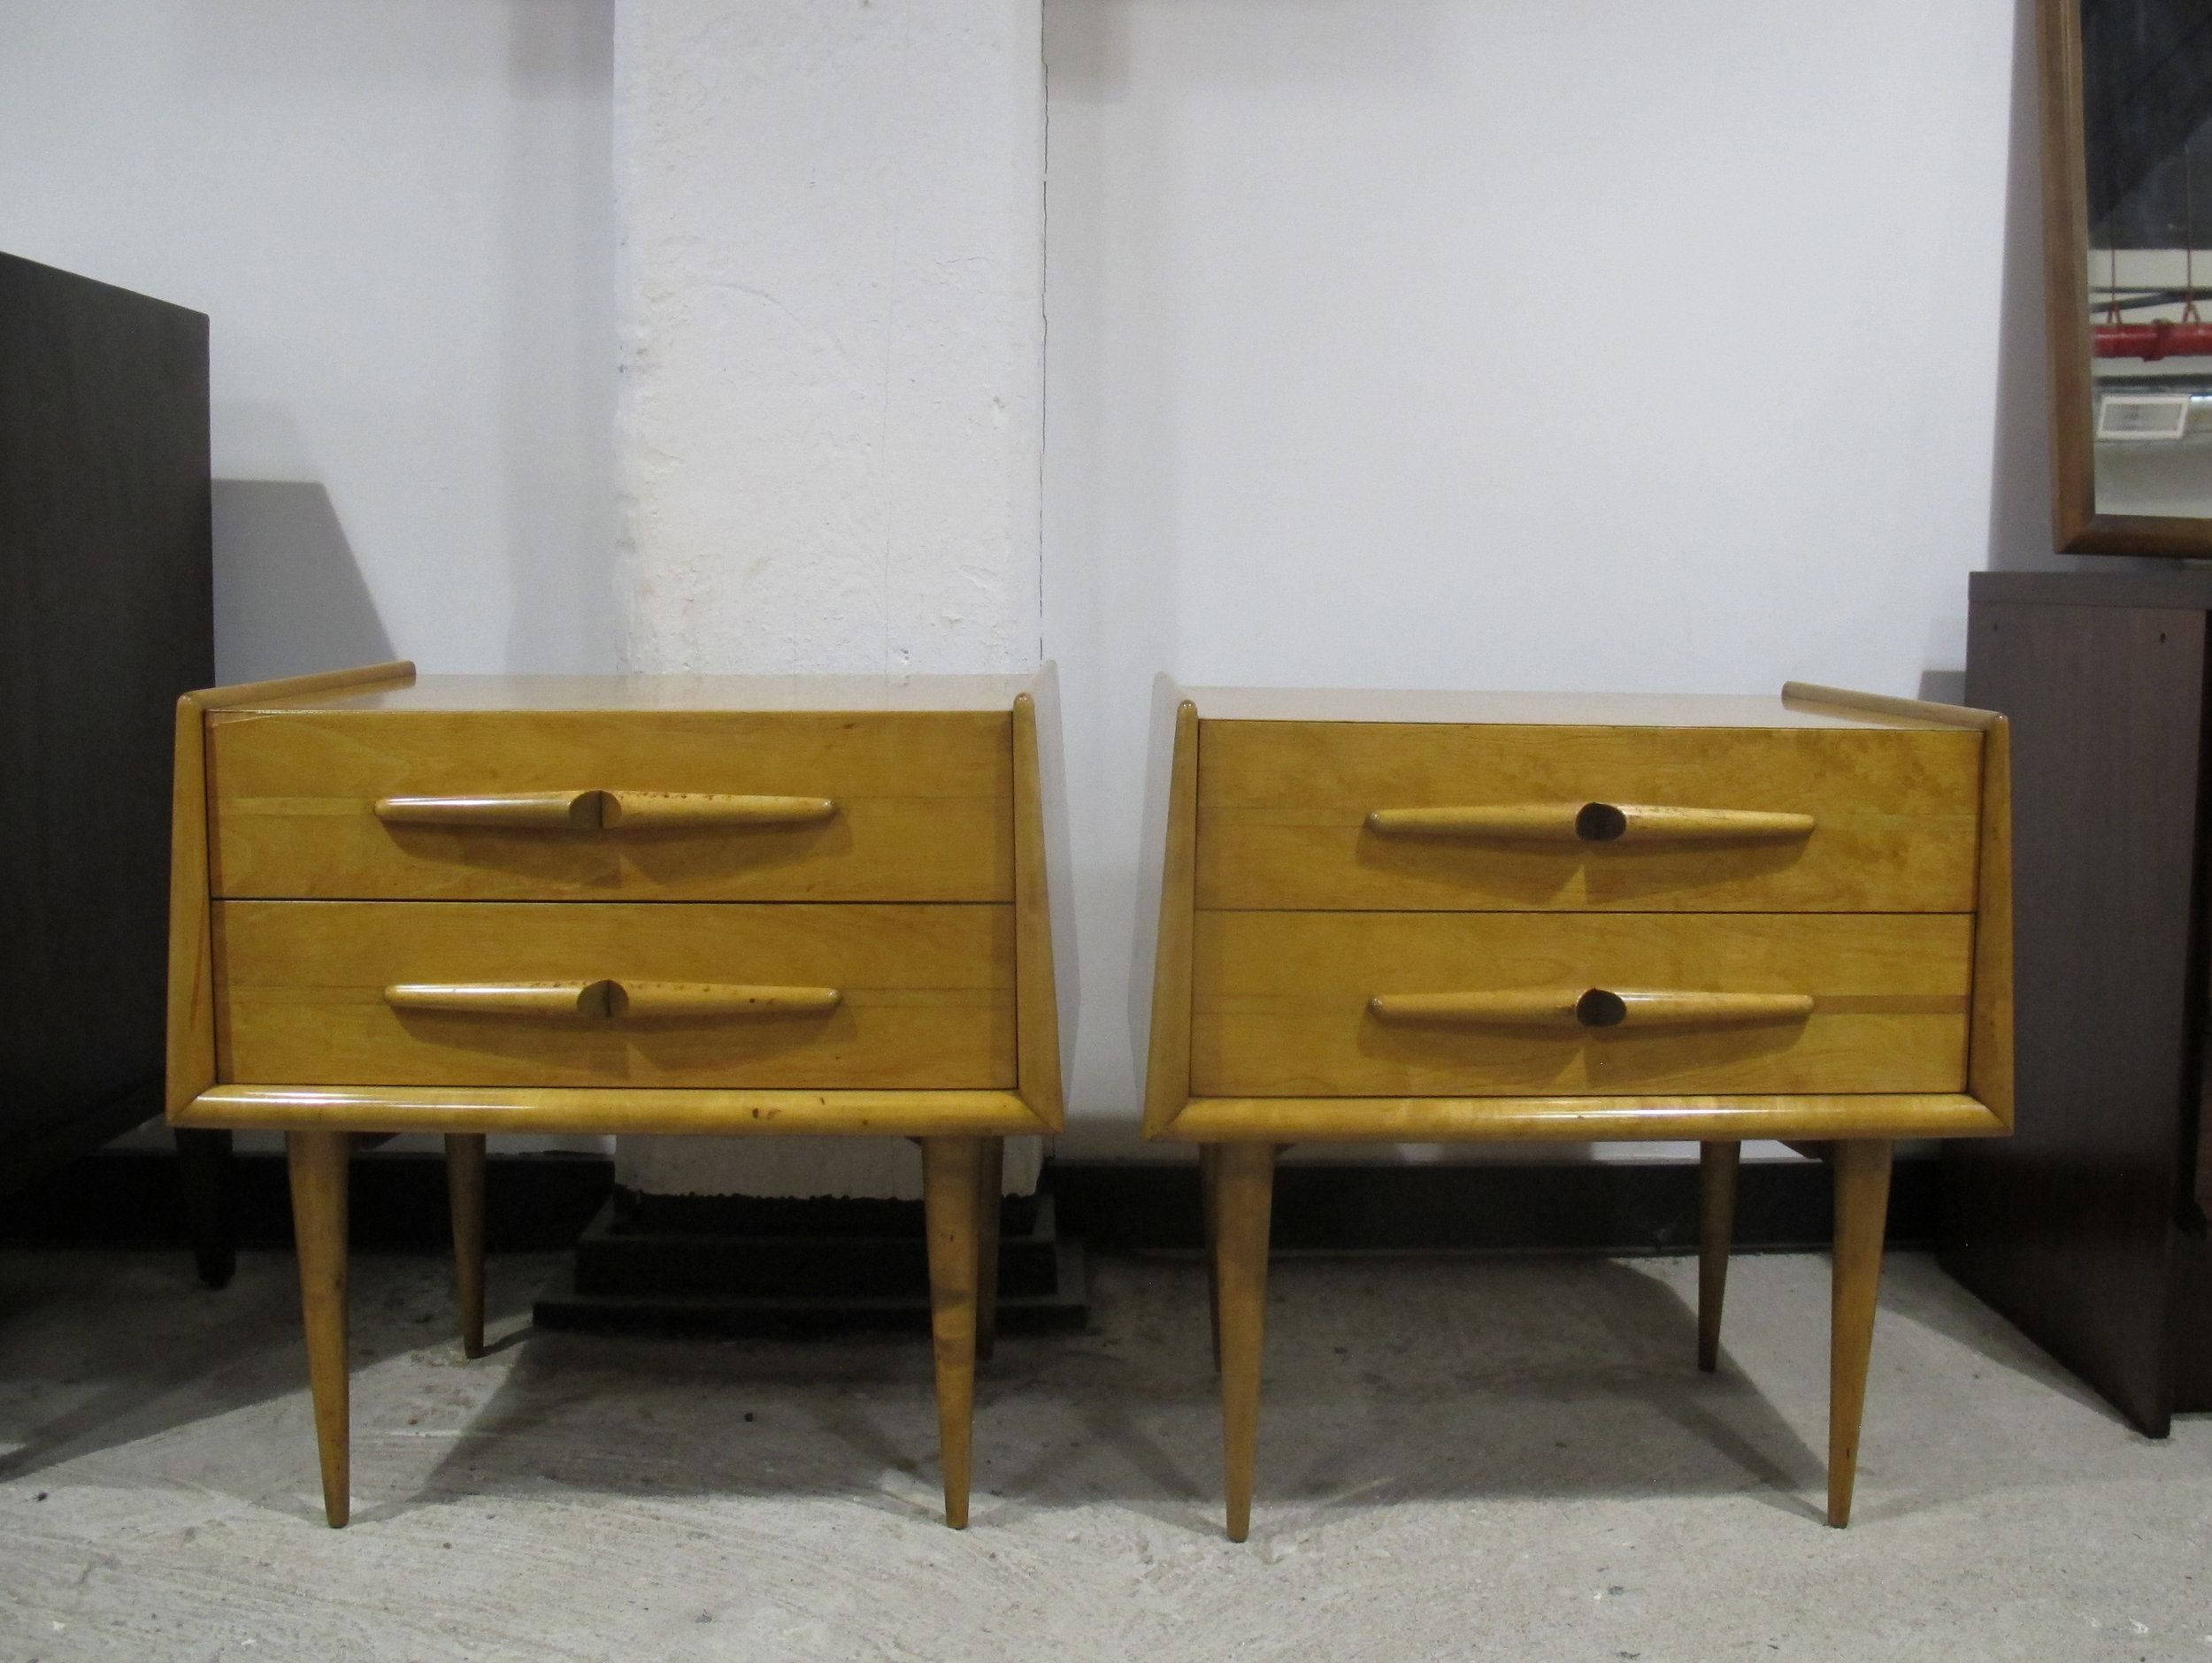 PAIR MID CENTURY MAPLE NIGHTSTANDS BY EDMOND SPENCE